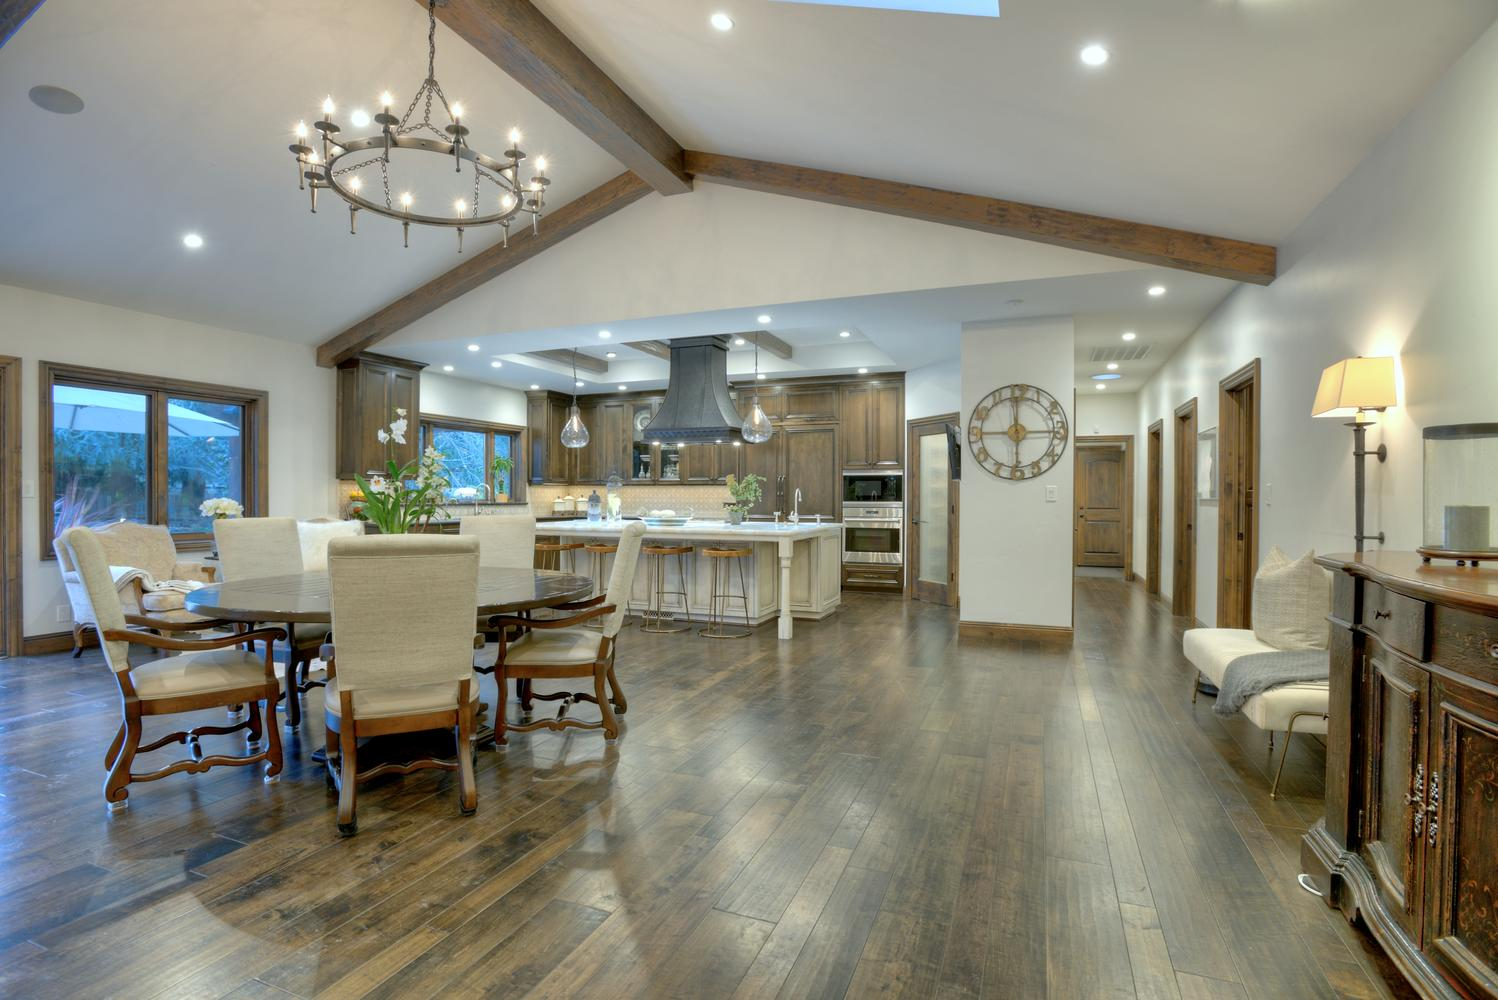 15977 Grandview Dr Monte-large-024-22-Kitchen and Dining Area View-1499x1000-72dpi.jpg